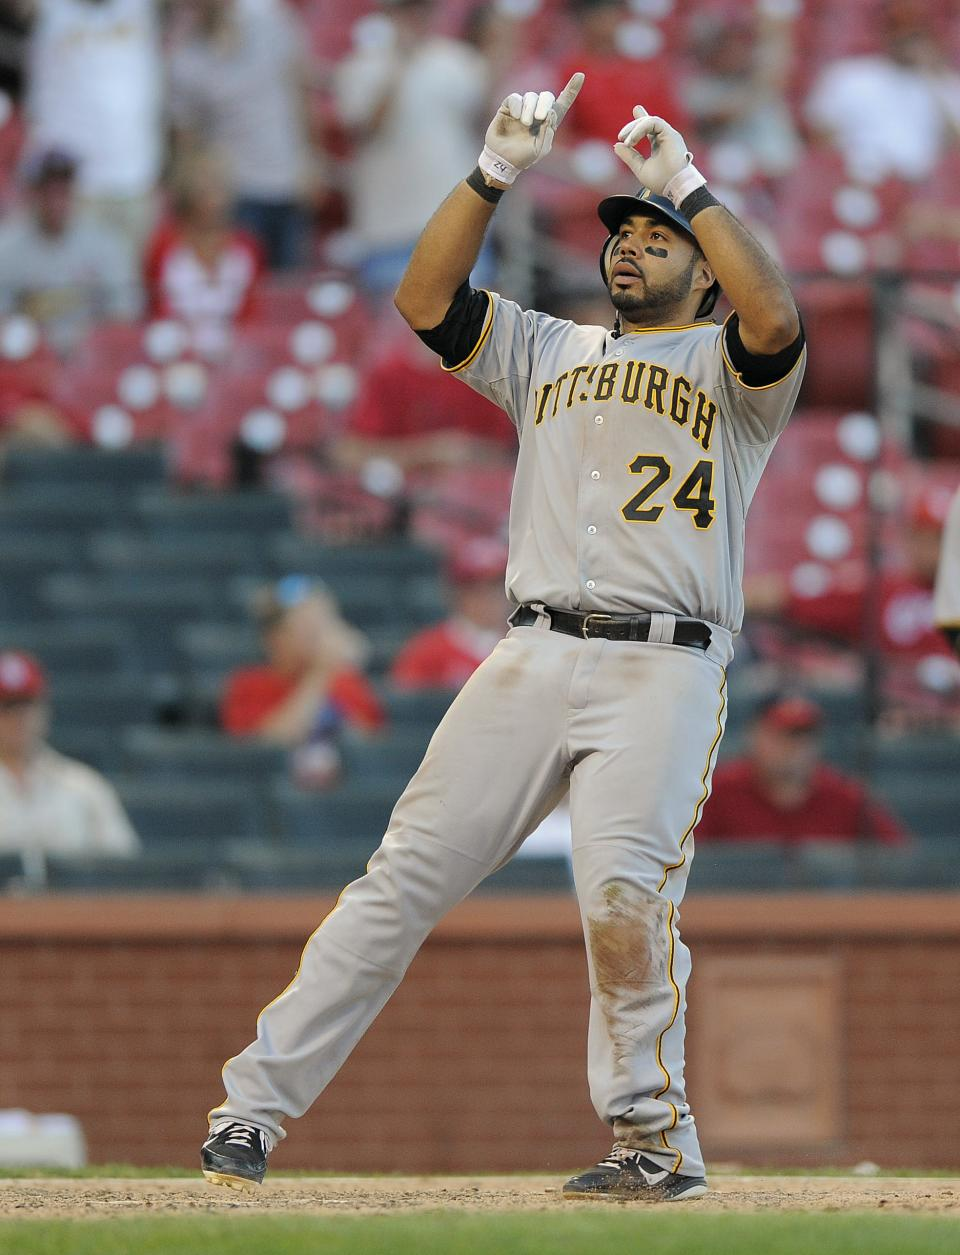 Pittsburgh Pirates' Pedro Alvarez gestures after hitting a solo home run off St. Louis Cardinals relief pitcher Barret Browning during the 19th inning of a baseball game on Sunday, Aug. 19, 2012, in St. Louis. The Pirates won 6-3 in 19 innings. (AP Photo/Jeff Curry)